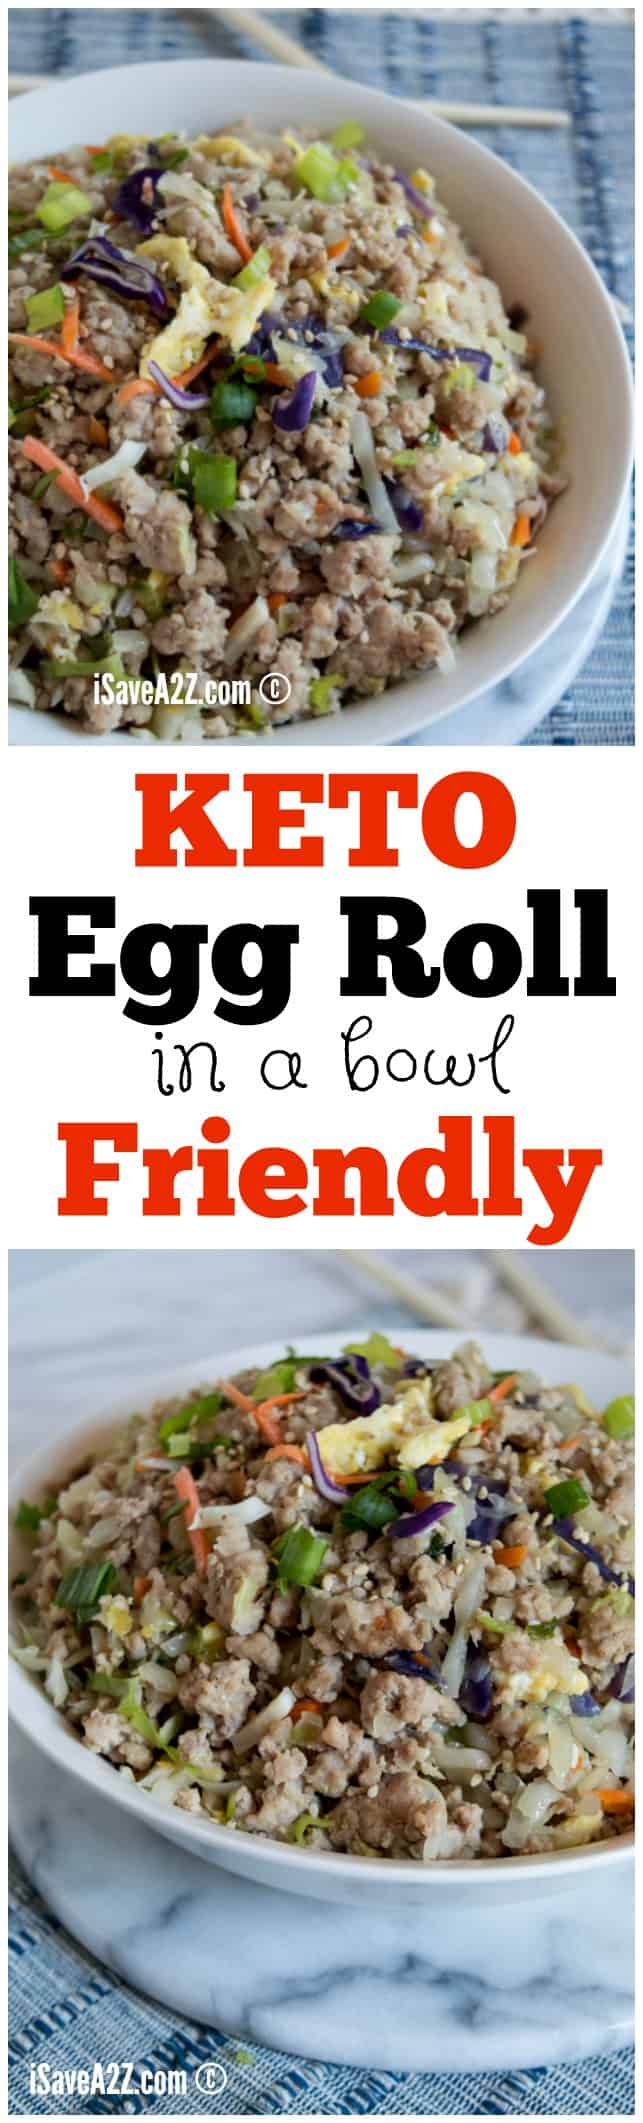 Keto Egg Rolls (in a bowl) Recipe